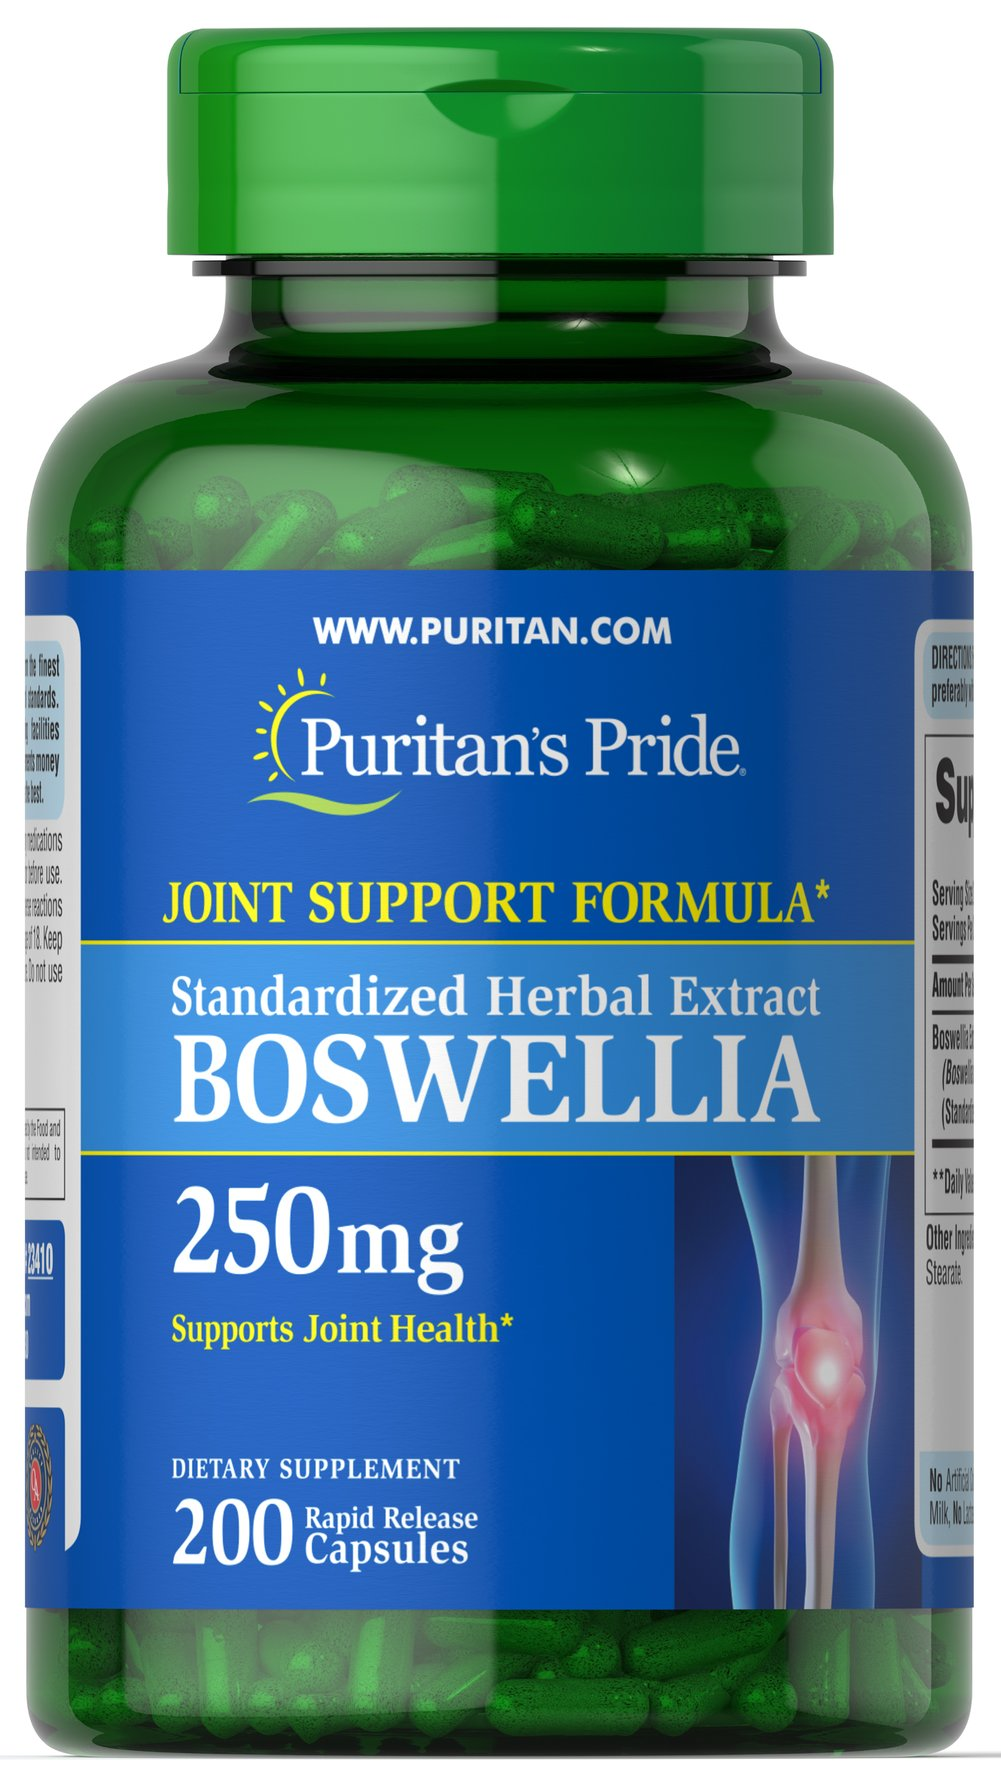 Boswellia Standardized Extract 250mg <p>Standardized to Contain 65% Boswellic Acid, 162.5 mg.</p><p><strong>Boswellia</strong> is a centuries old herb that helps support the structural health of cartilage.**</p> 200 Capsules 250 mg $31.89